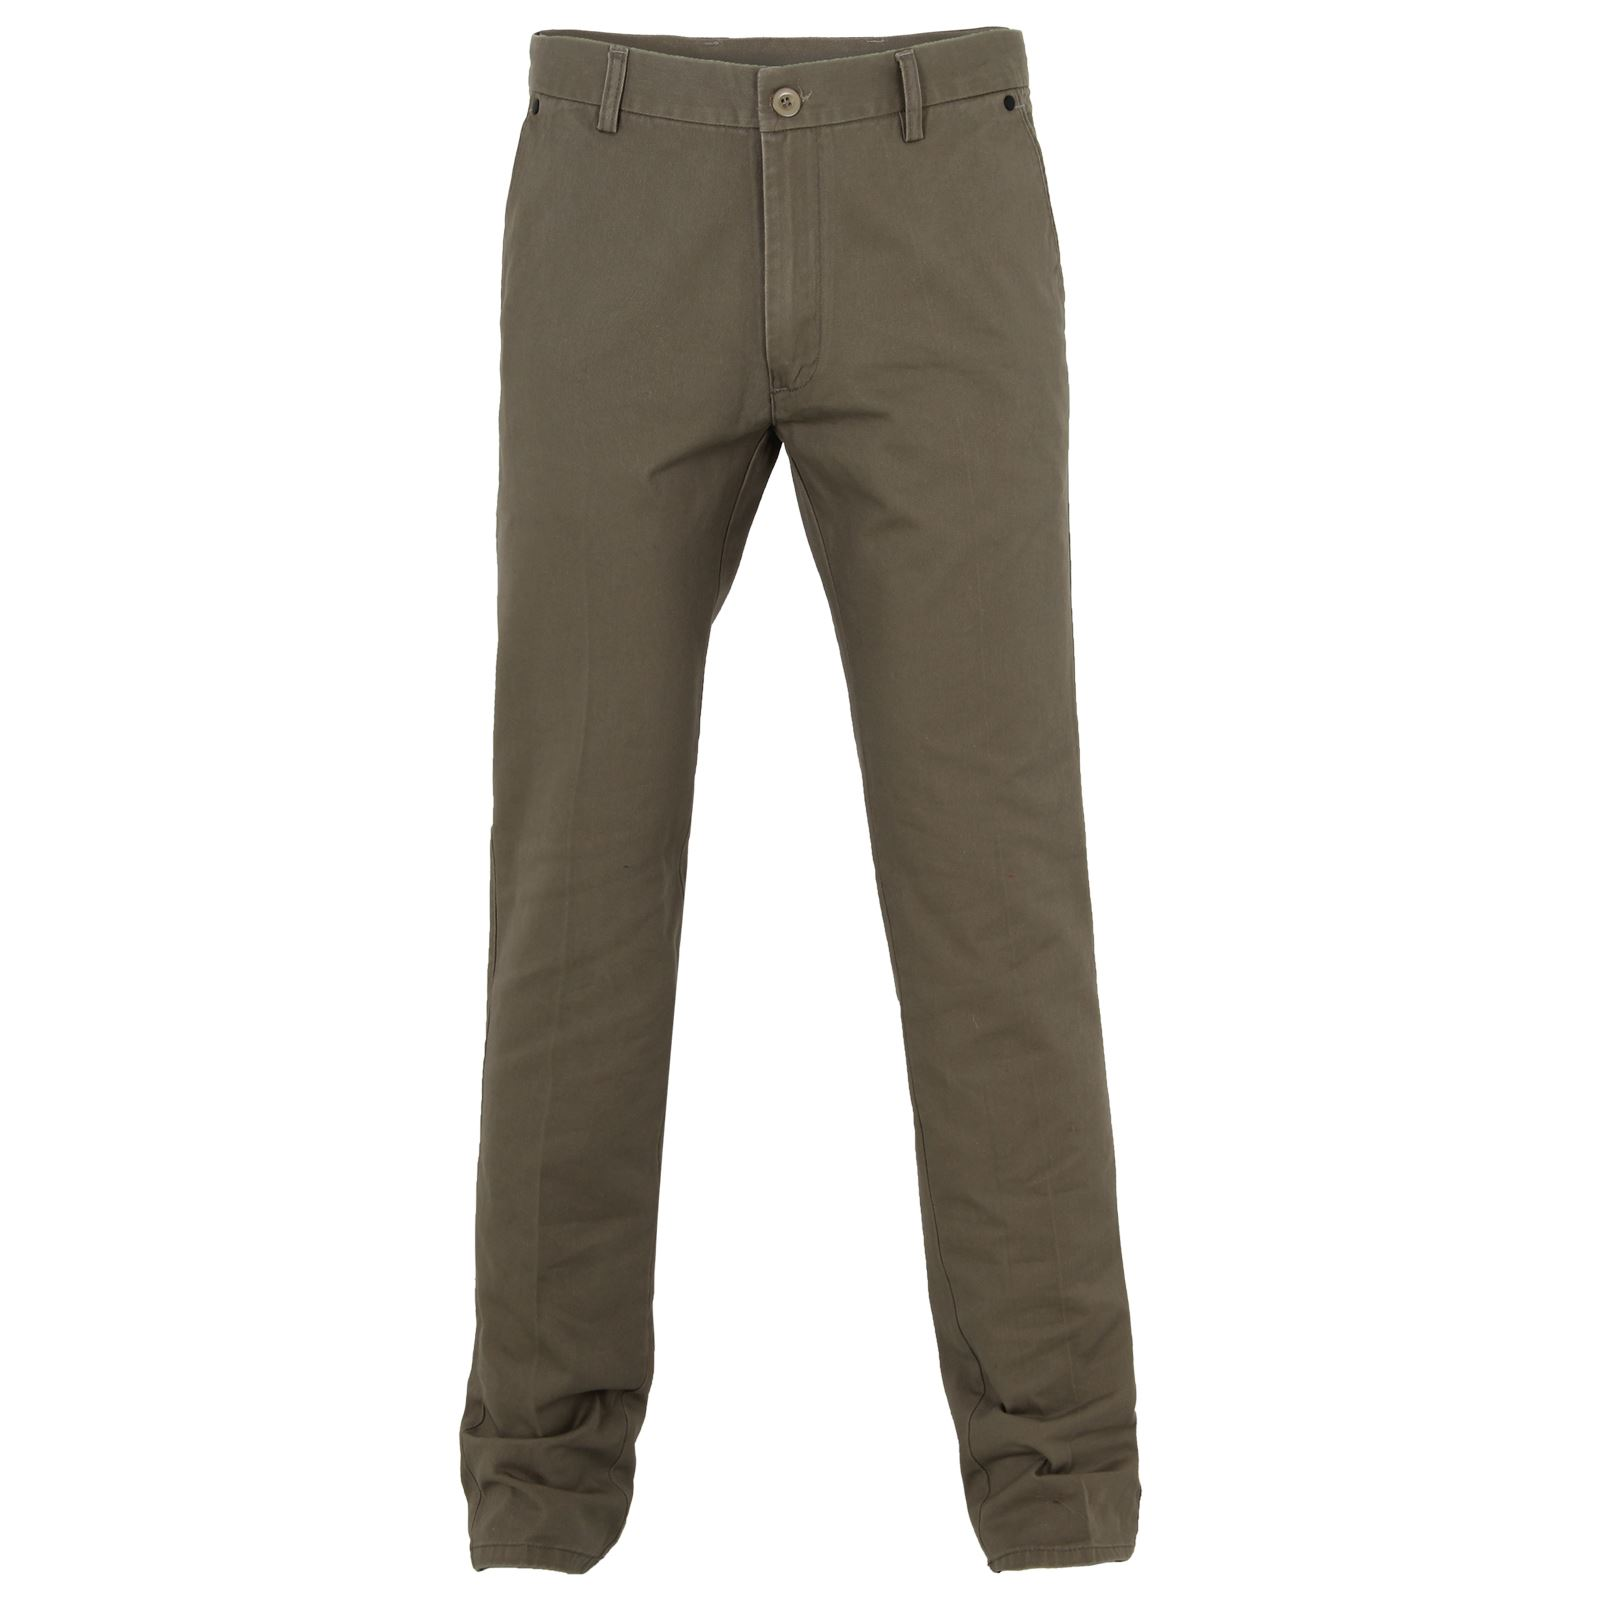 Shop online for men's chino pants at 0549sahibi.tk Browse straight-leg, slim-fit & tapered-leg chinos & more in a variety of styles. Free shipping & returns.